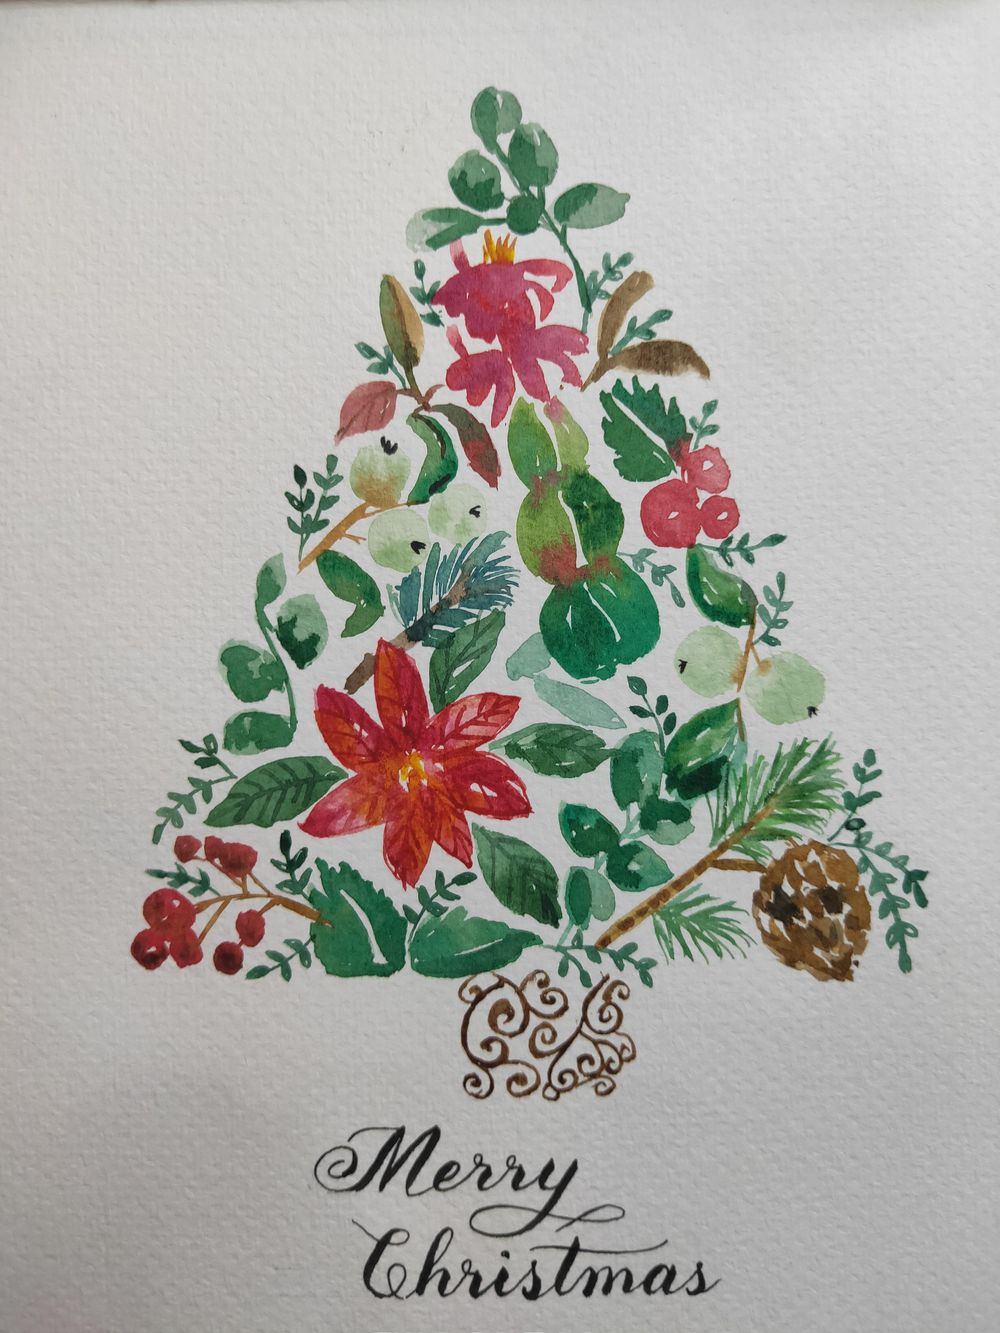 Loose Winter/Christmas Florals - image 10 - student project